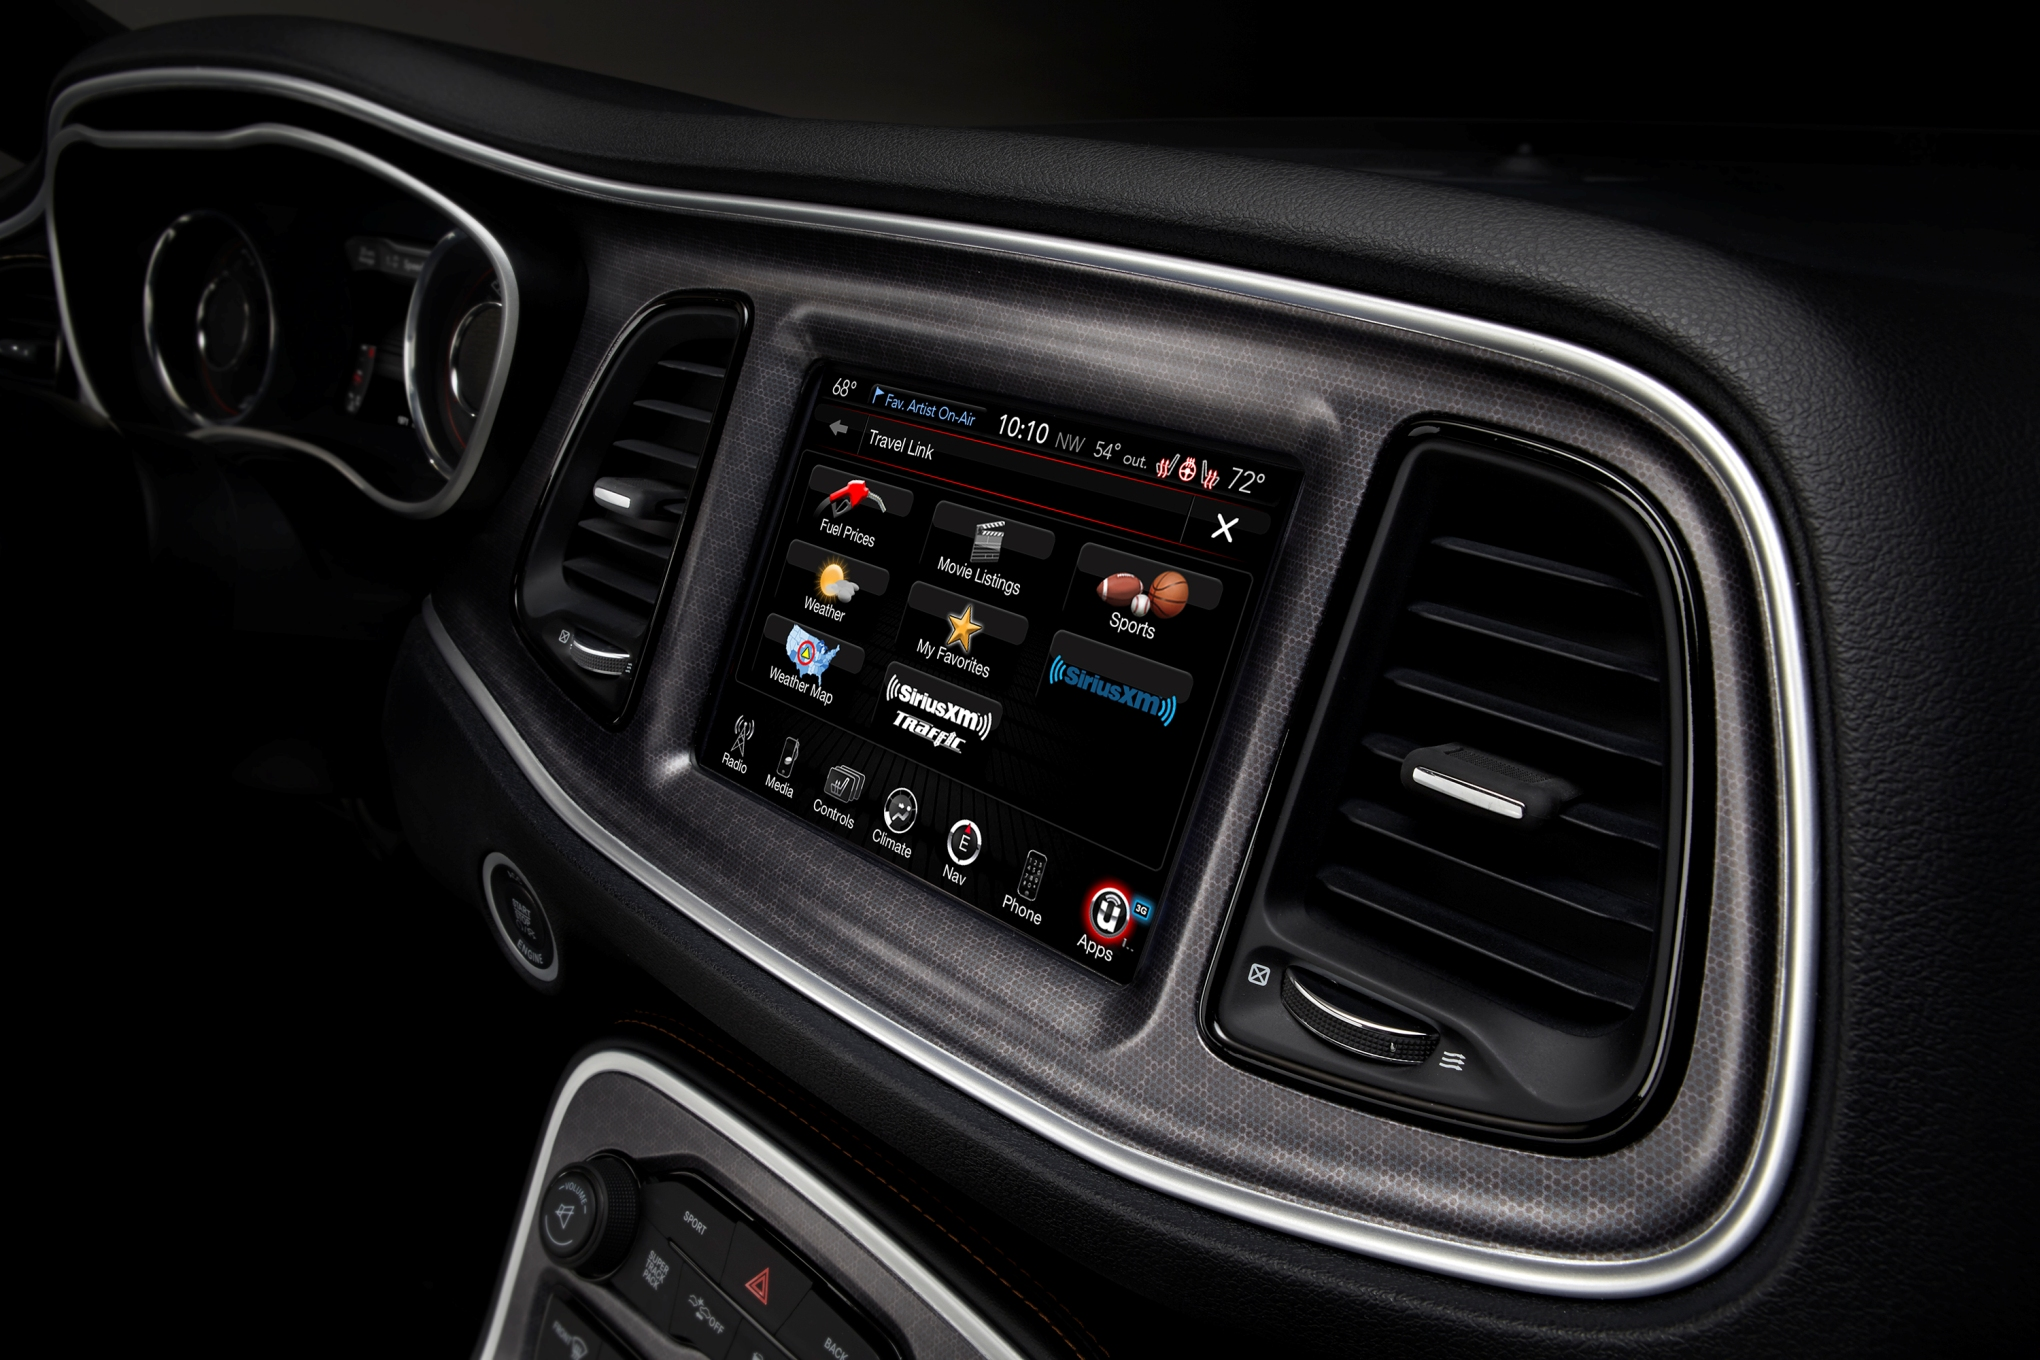 Chrysler's 8.4-inch Uconnect system is a powerful tool that combines music, performance, phone service, navigation, wifi, and internet access all in one. Getting the most from it, however, requires at least three separate subscription services. We added them up, and after all introductory trial periods are over it will set you back about $780 per year. Currently, Uconnect 8.4 is a required option on all 6.4-liter HEMI Challengers.